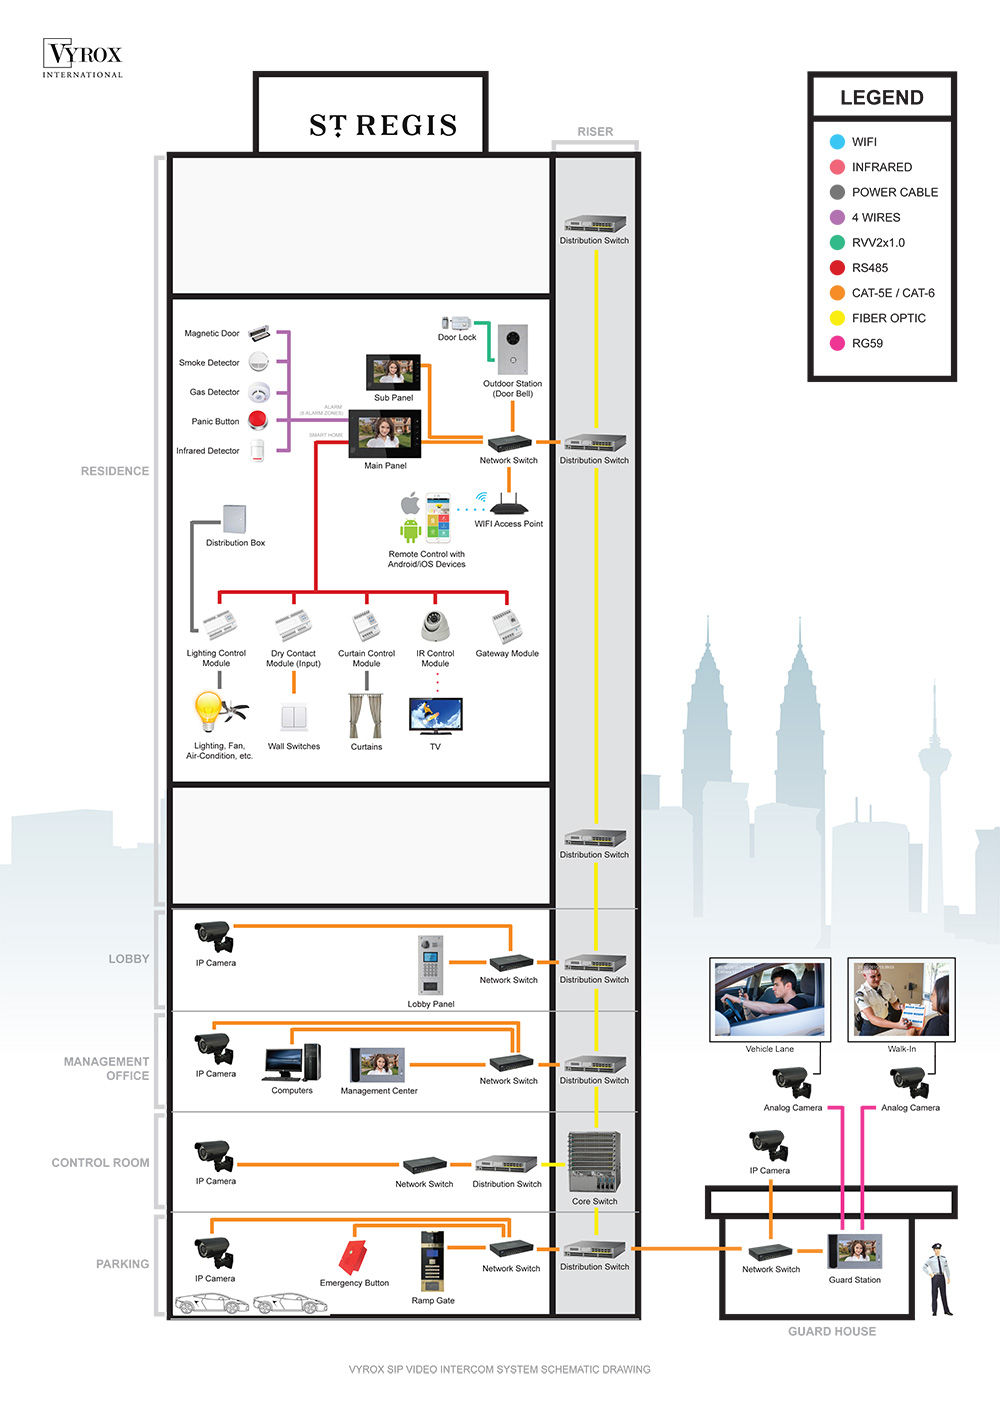 Vyrox video intercom malaysia st regis hotel audio video intercom security system diagram ccuart Gallery